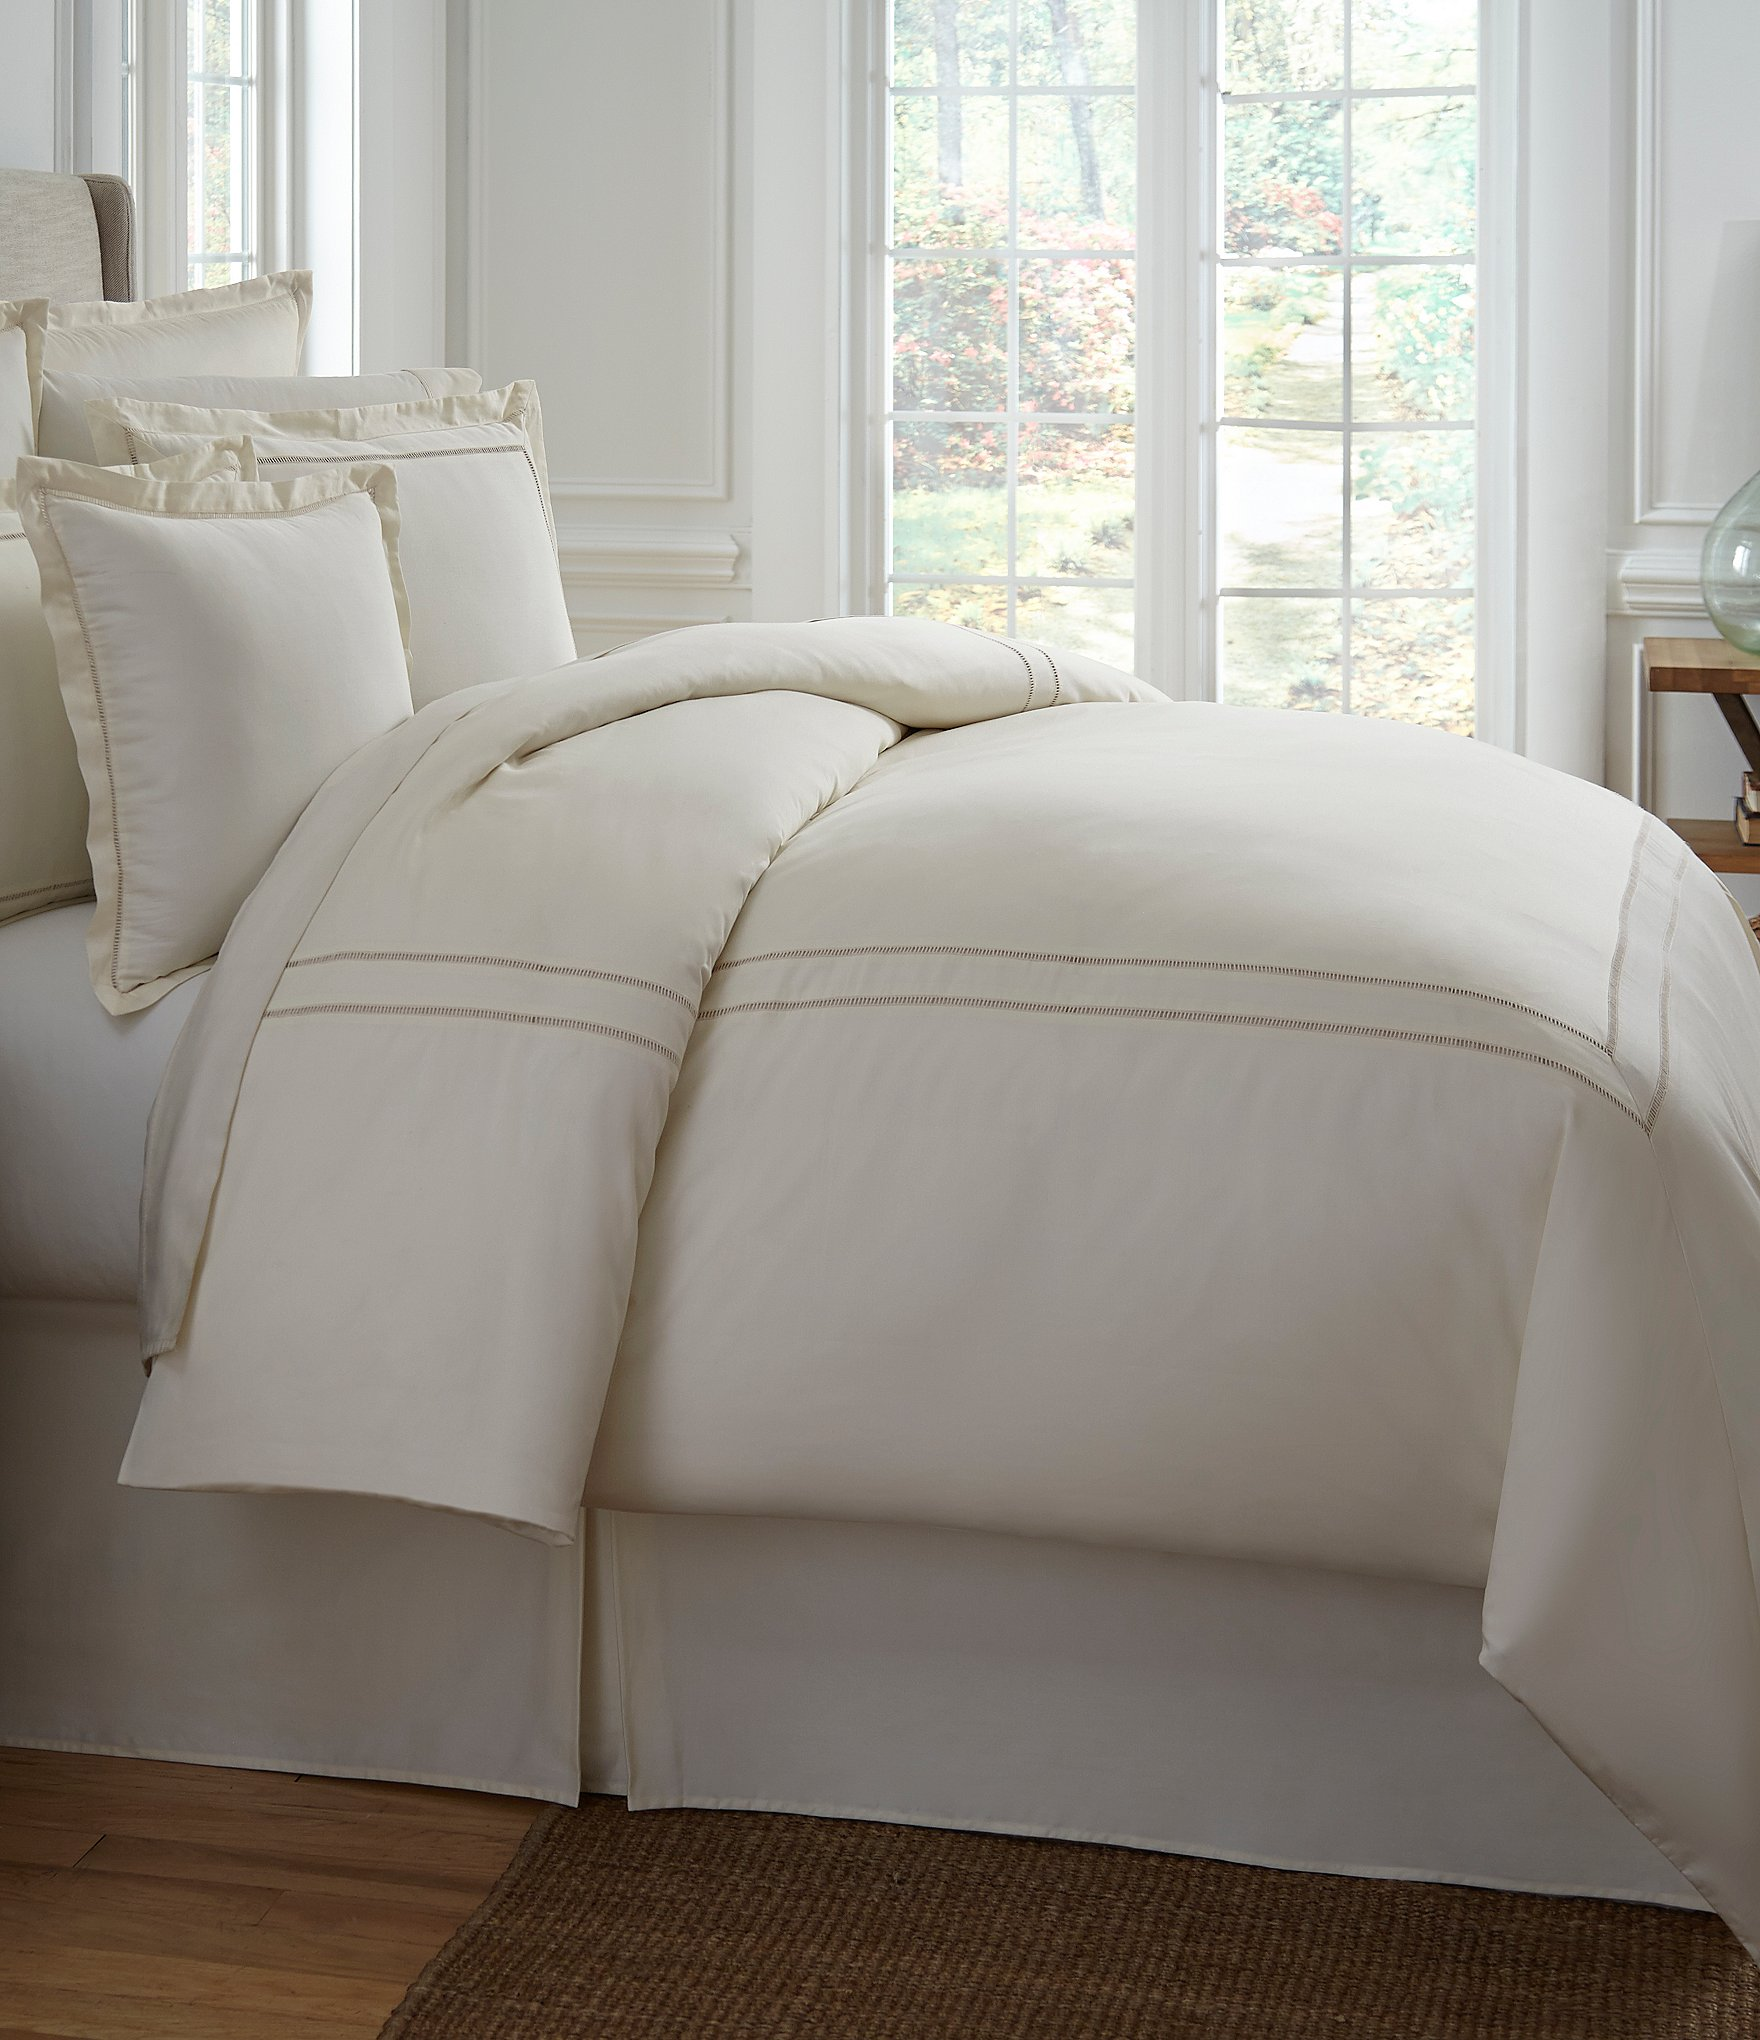 sets bedding comforter burlap with a down bedspreads of as ruffle white full well also duvet cover size colored nursery conjunction off in set what plus together beddings cream is quilt